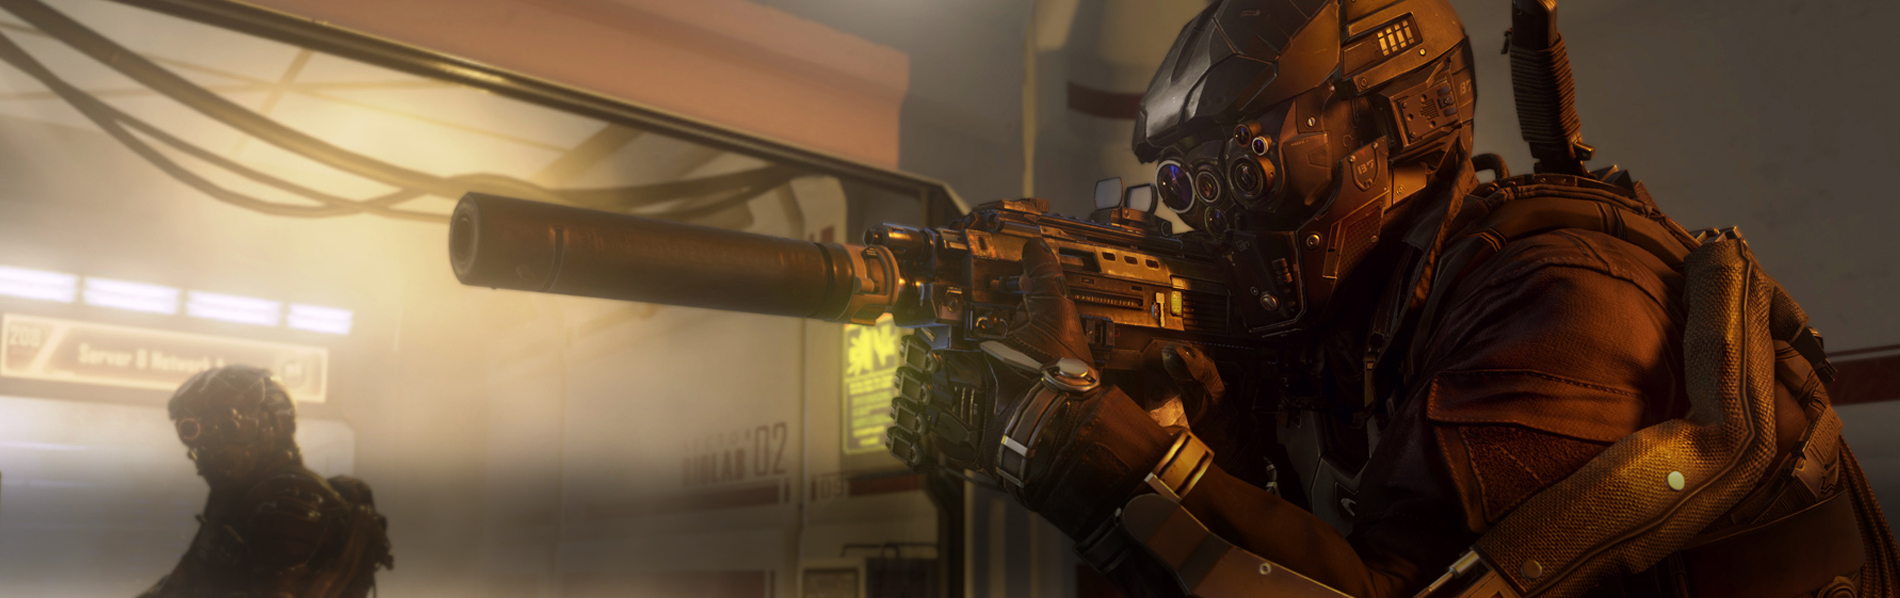 Call of Duty: Advanced Warfare—A New Era of Combat